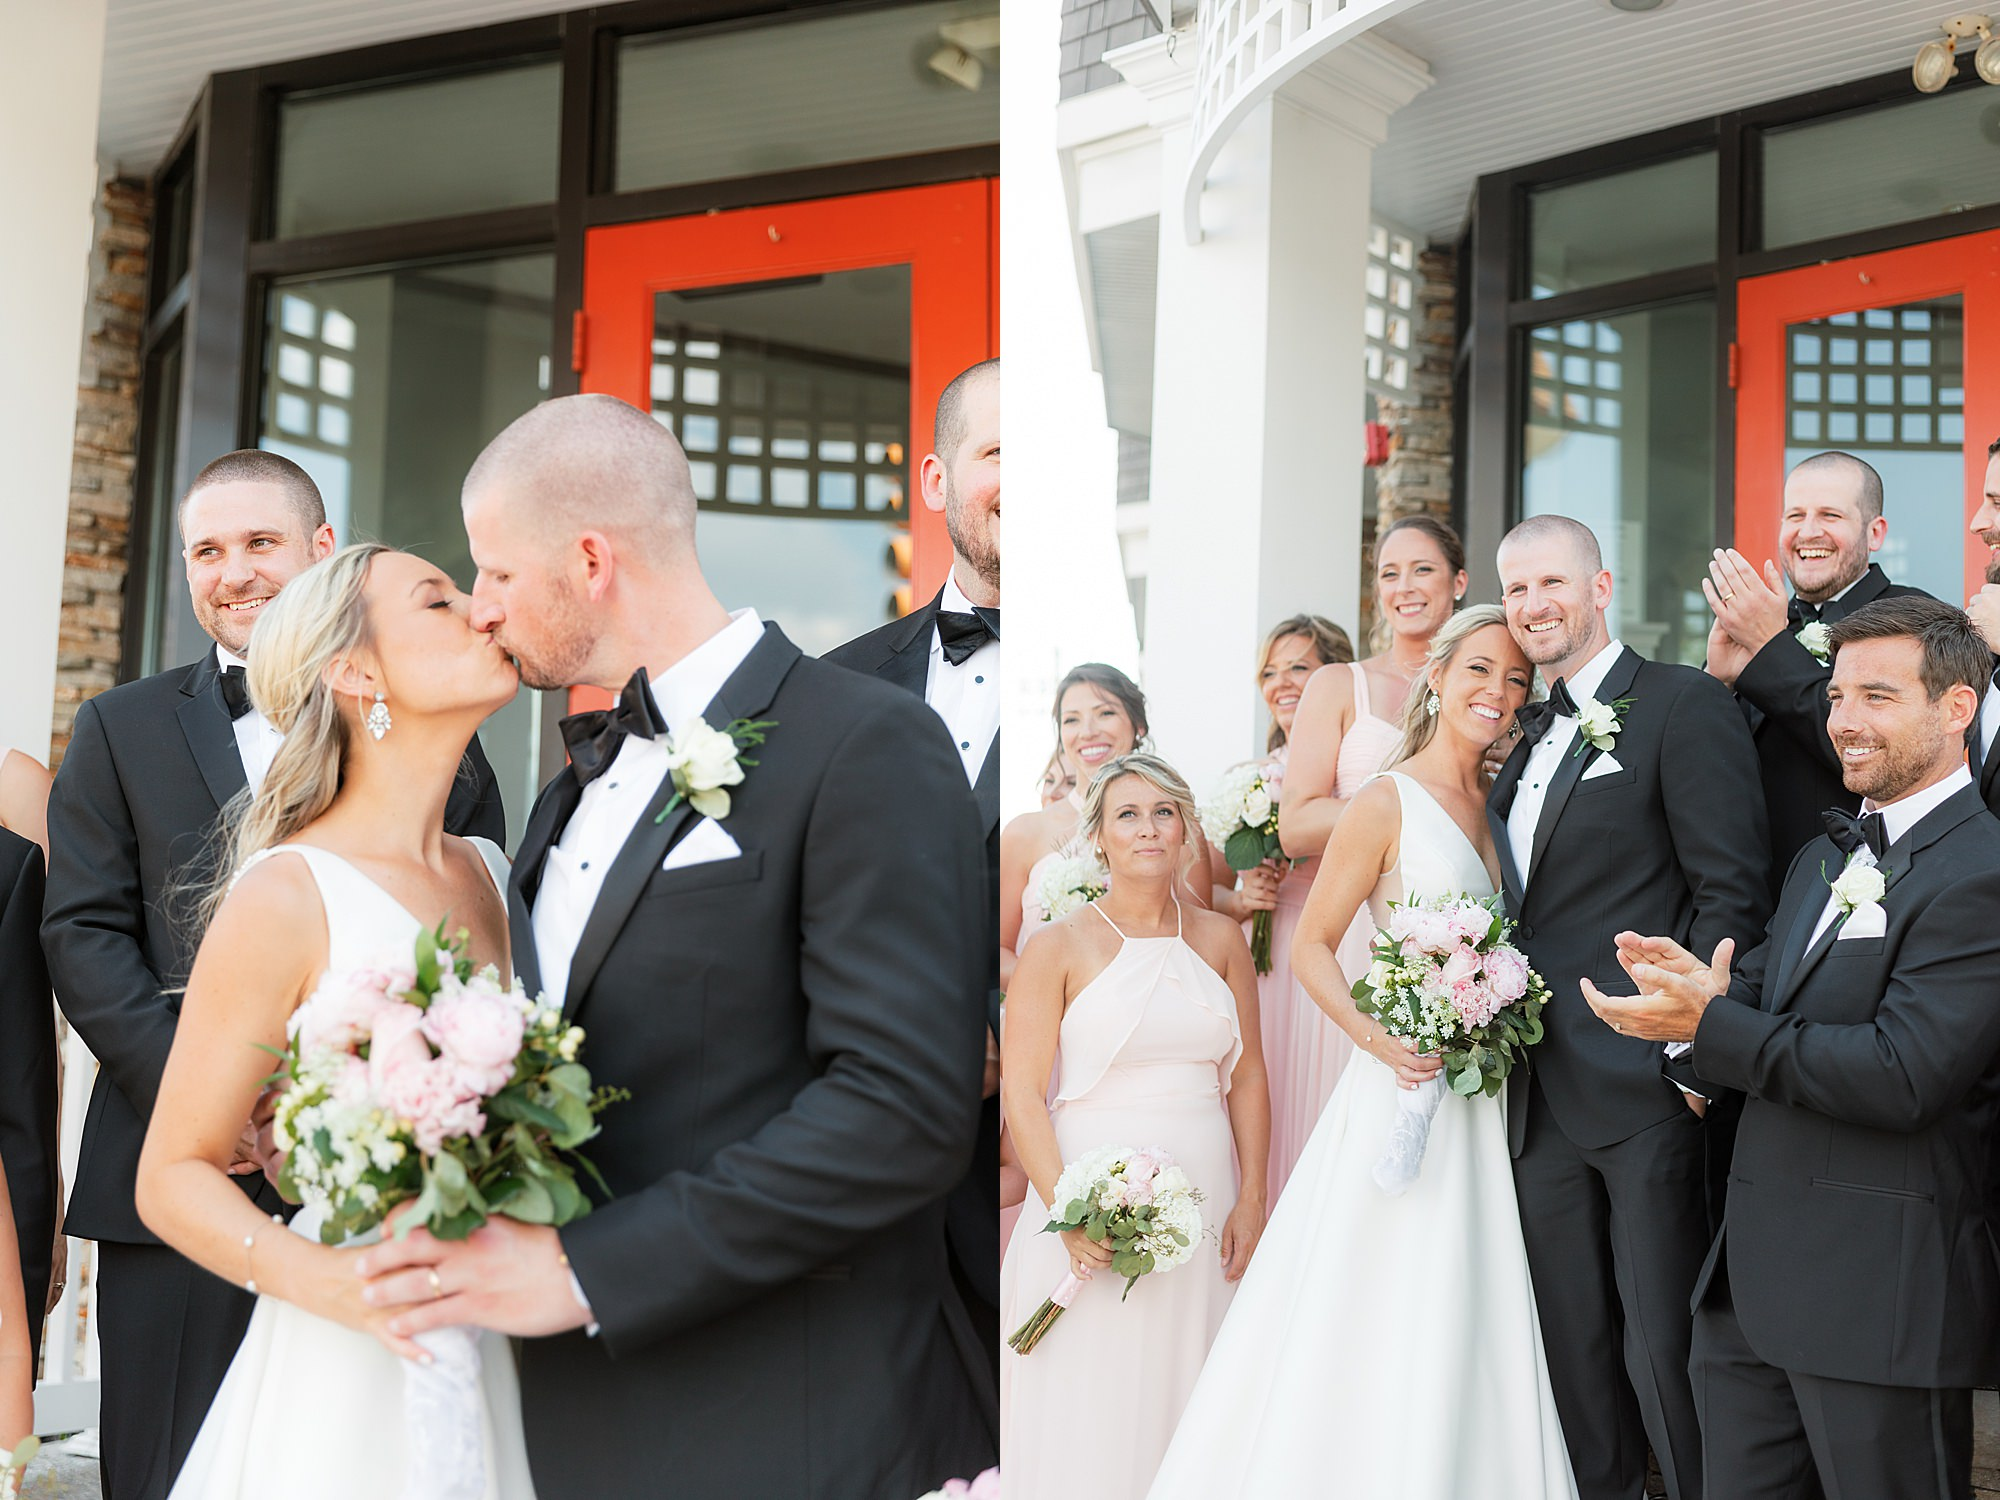 Natural and Vibrant Wedding Photography at the Reeds in Stone Harbor NJ by Magdalena Studios 0029